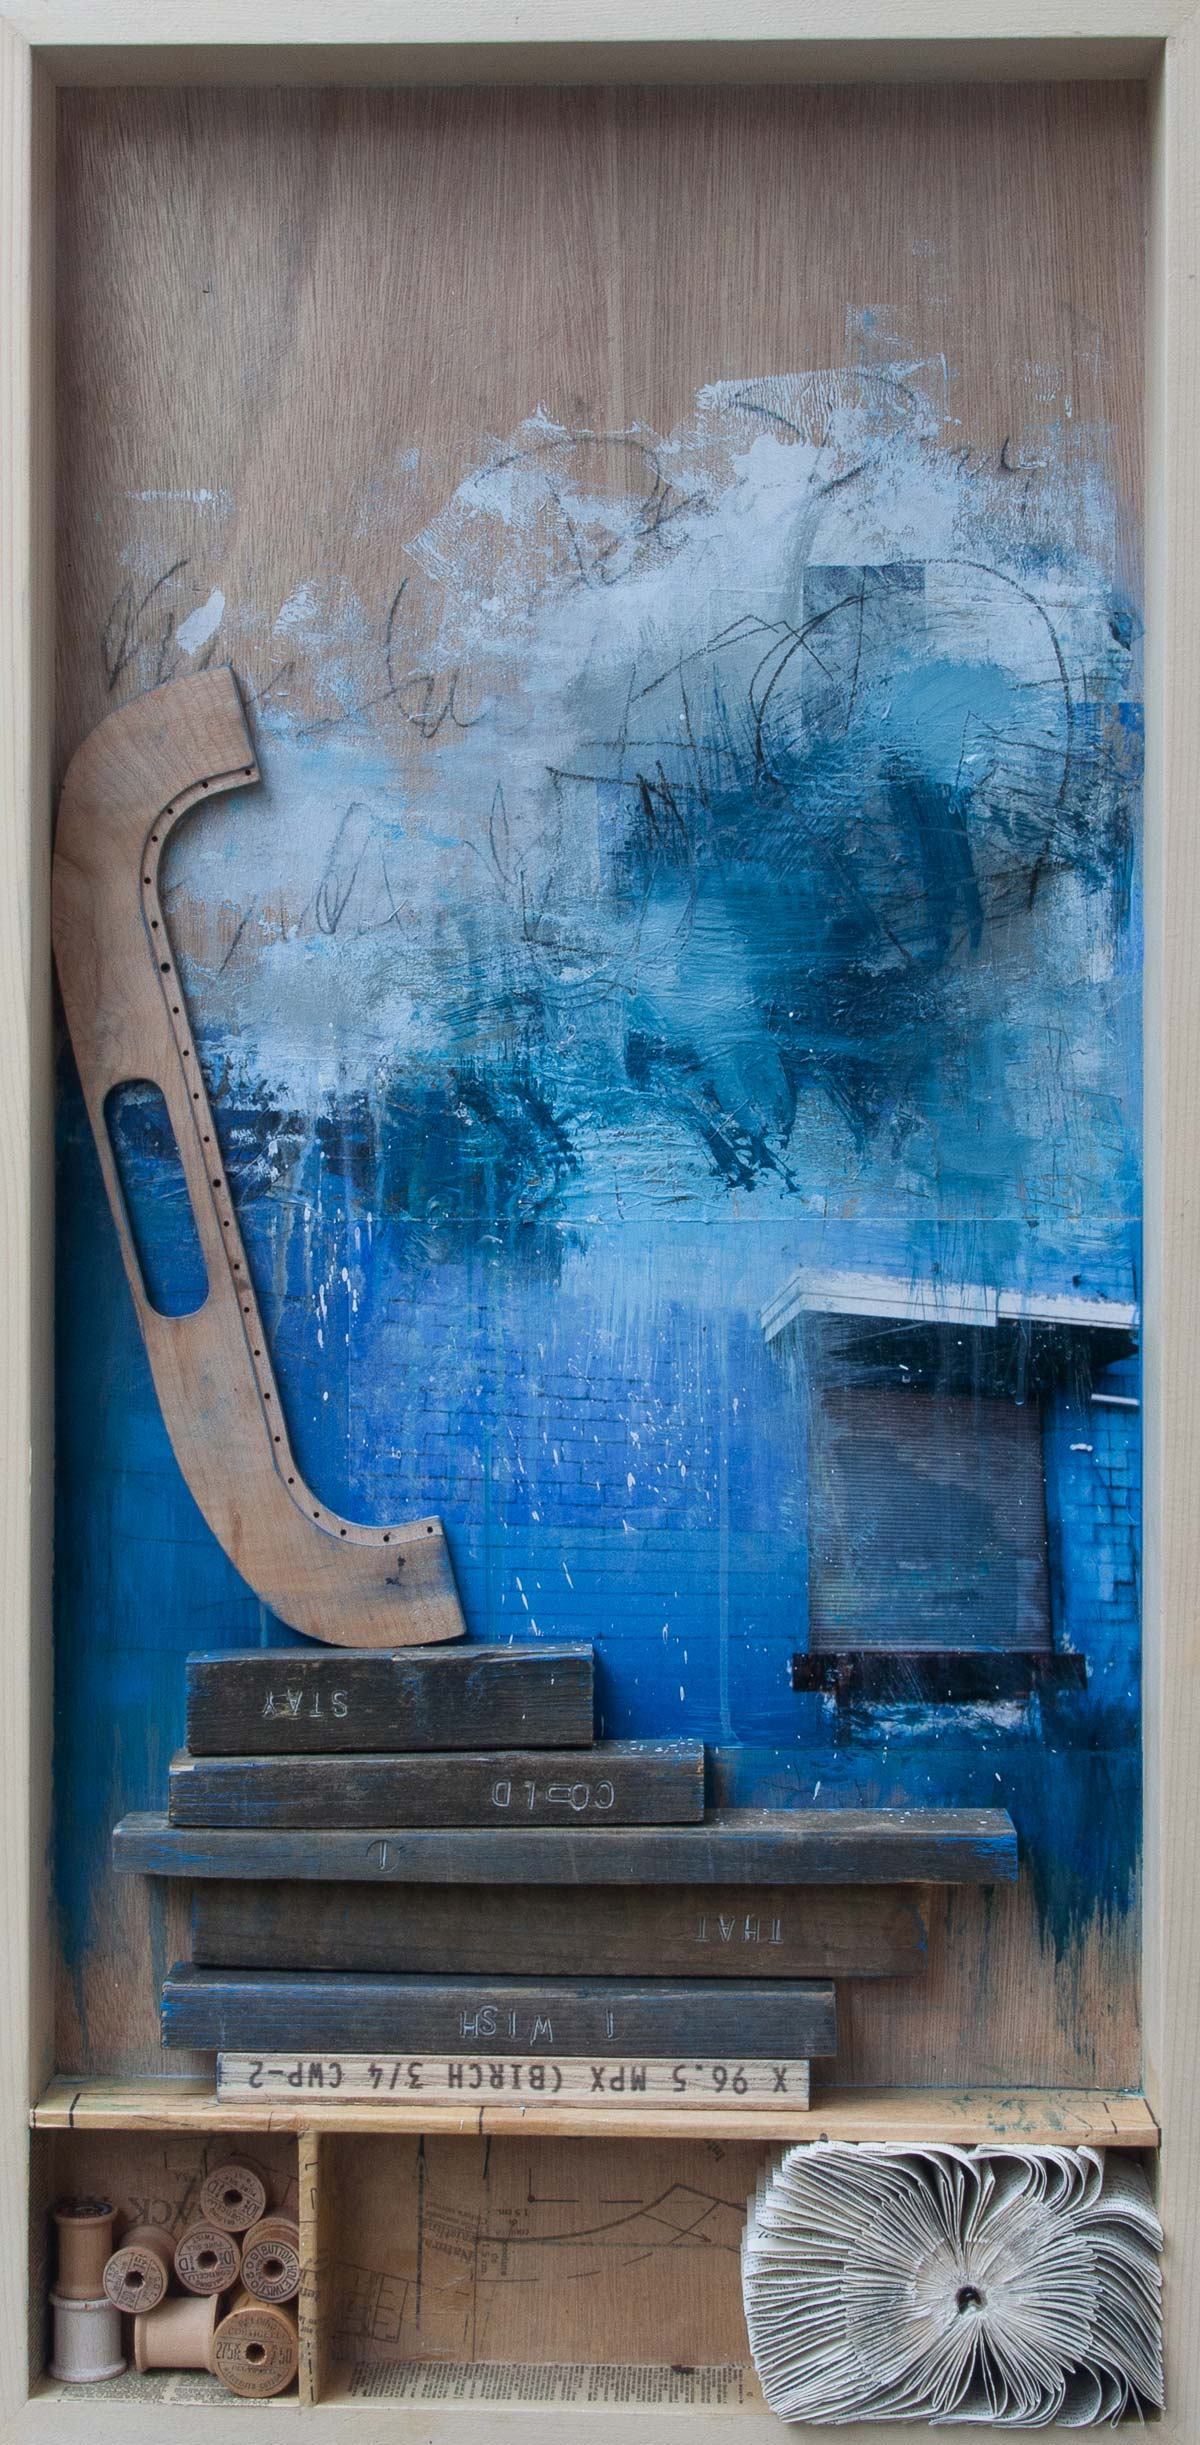 """I Wish That I Could Stay, 2015, mixed media on wood, 18"""" x 36"""""""